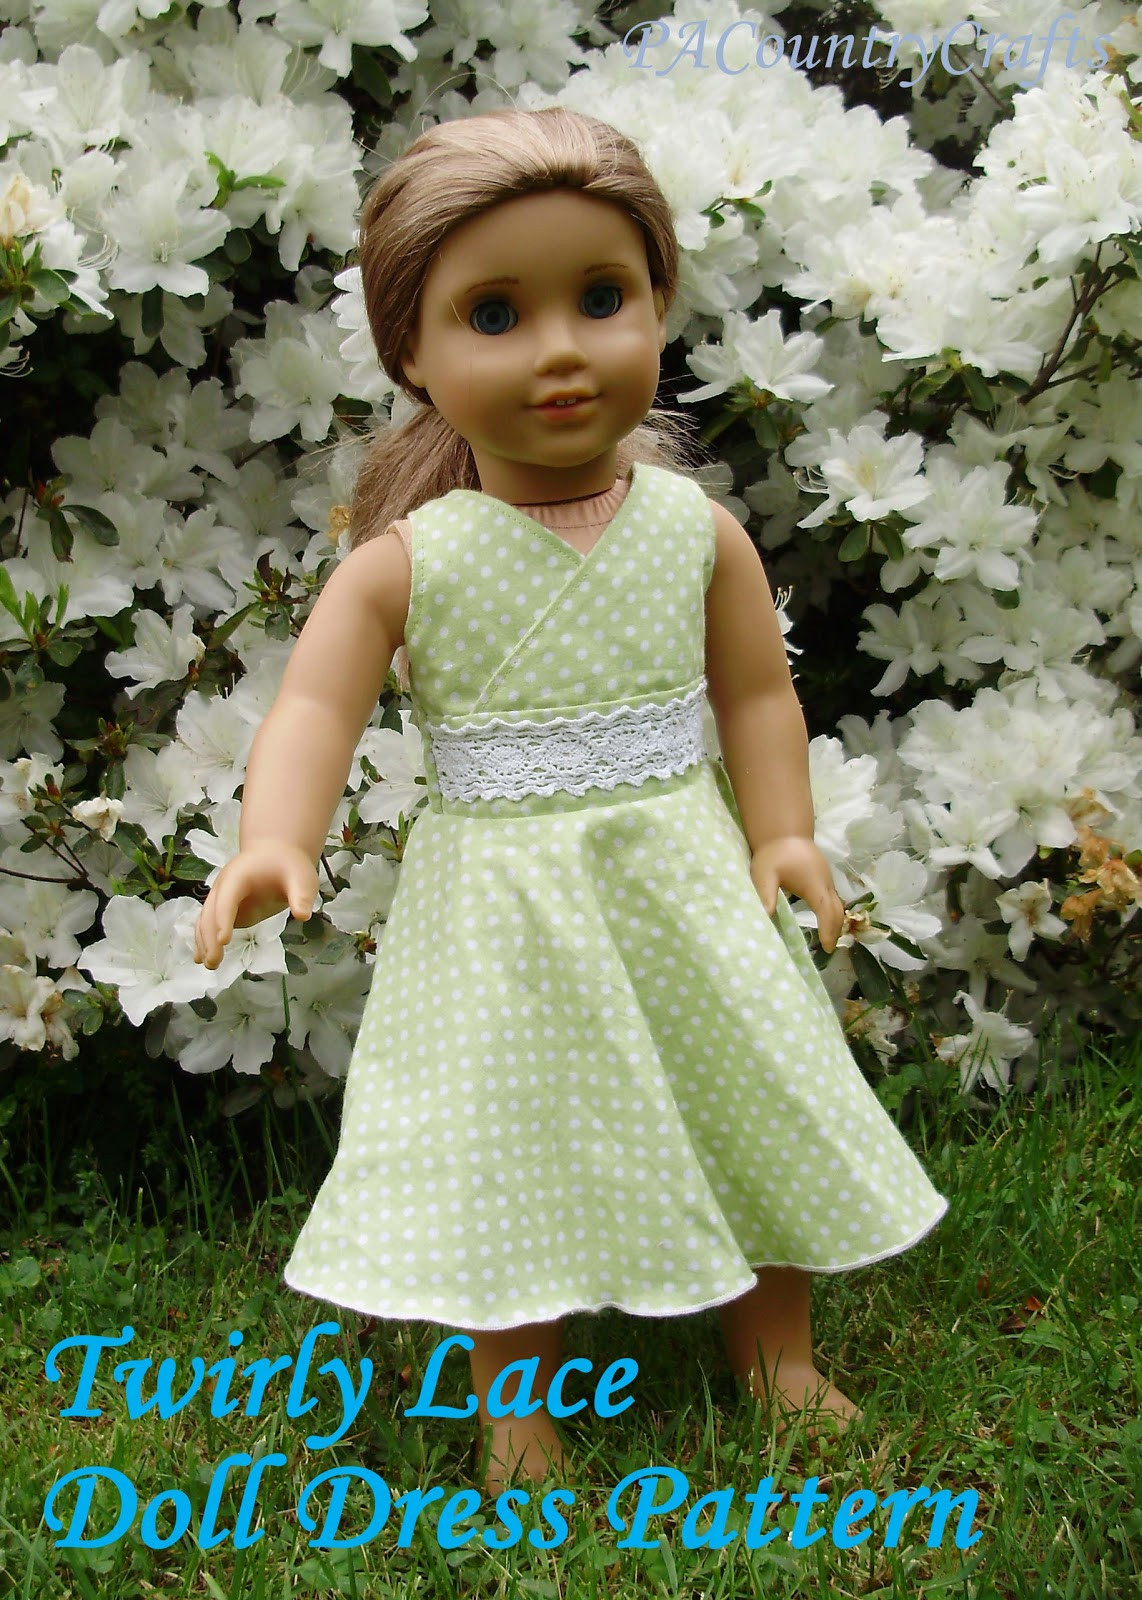 Doll Patterns Unique Twirly Lace Doll Dress Pattern Of Doll Patterns Fresh Spirit Dolls